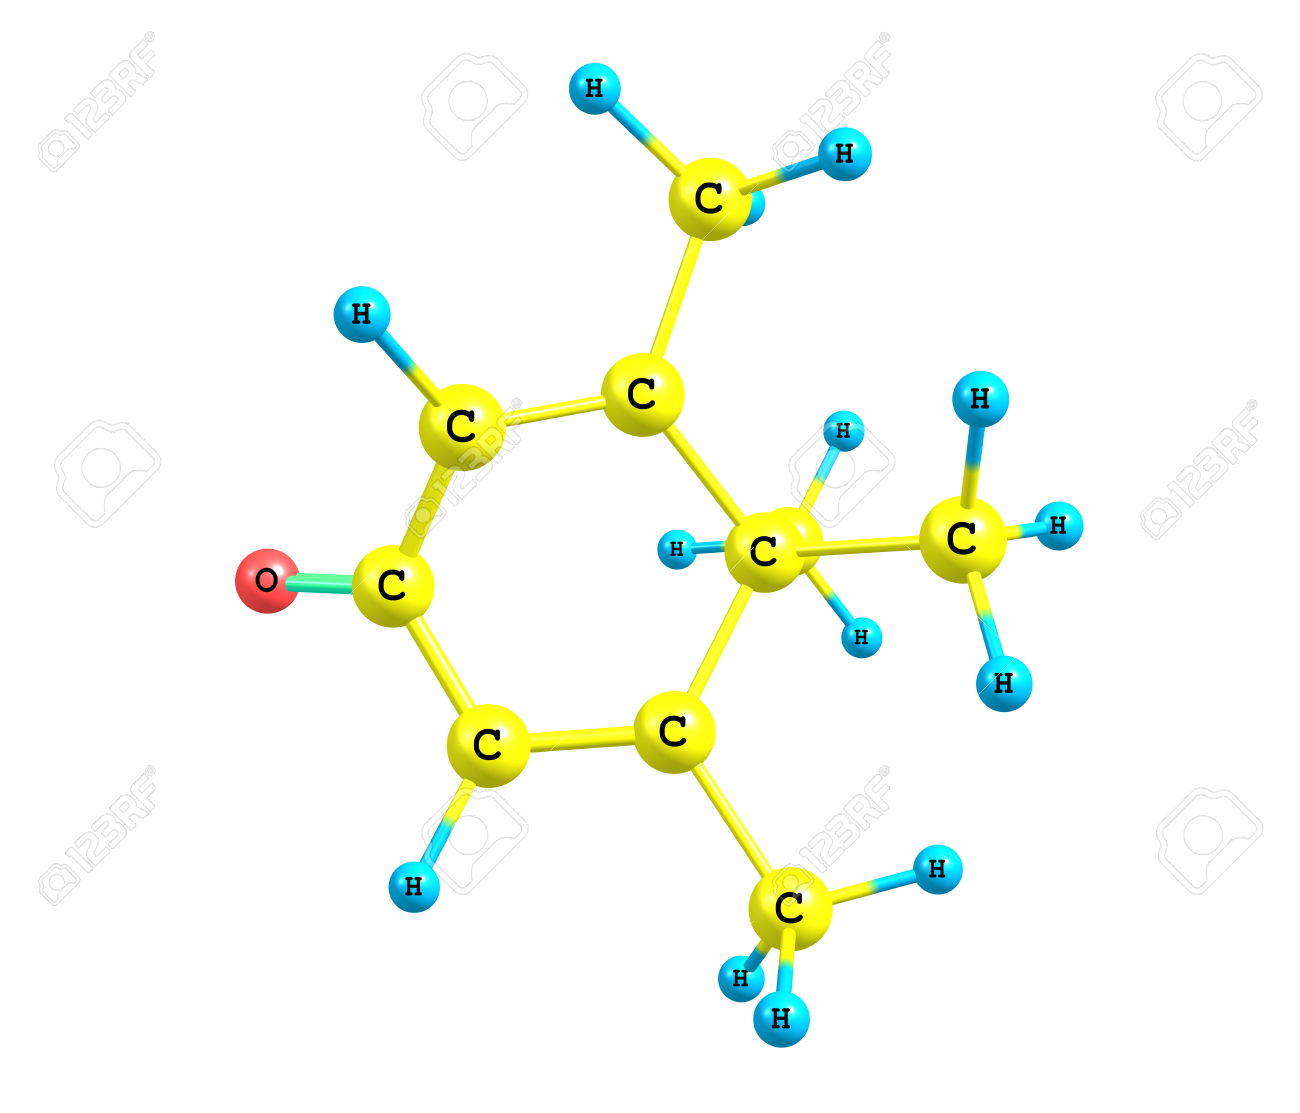 Penguinone Is An Organic Compound With The Molecular Formula.